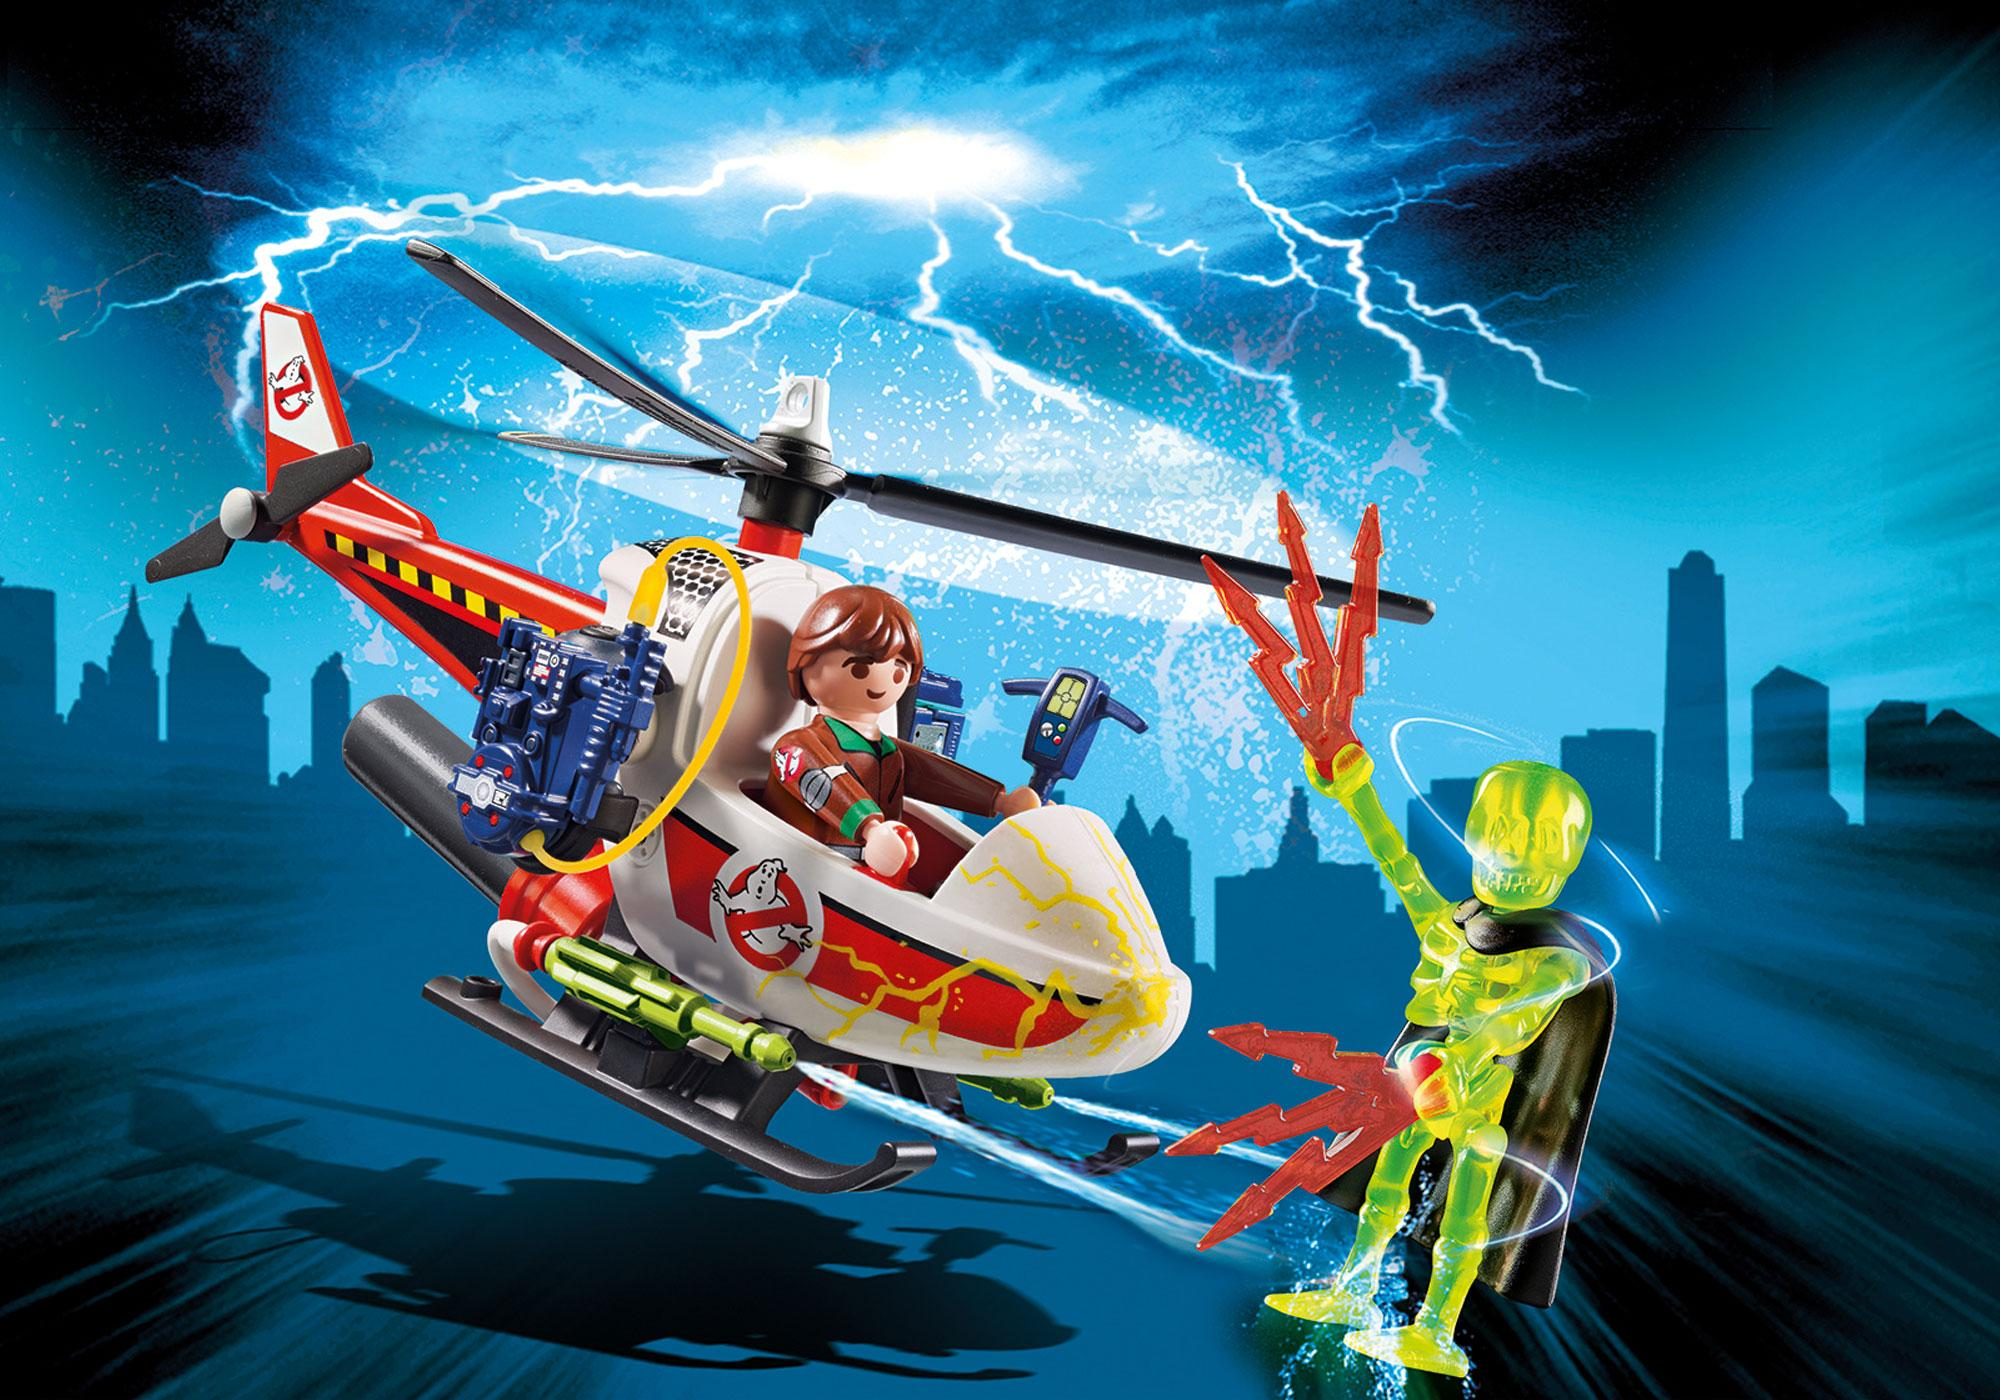 9385_product_detail/GHOSTBUSTER - VENKMAN SI ELICOPTER